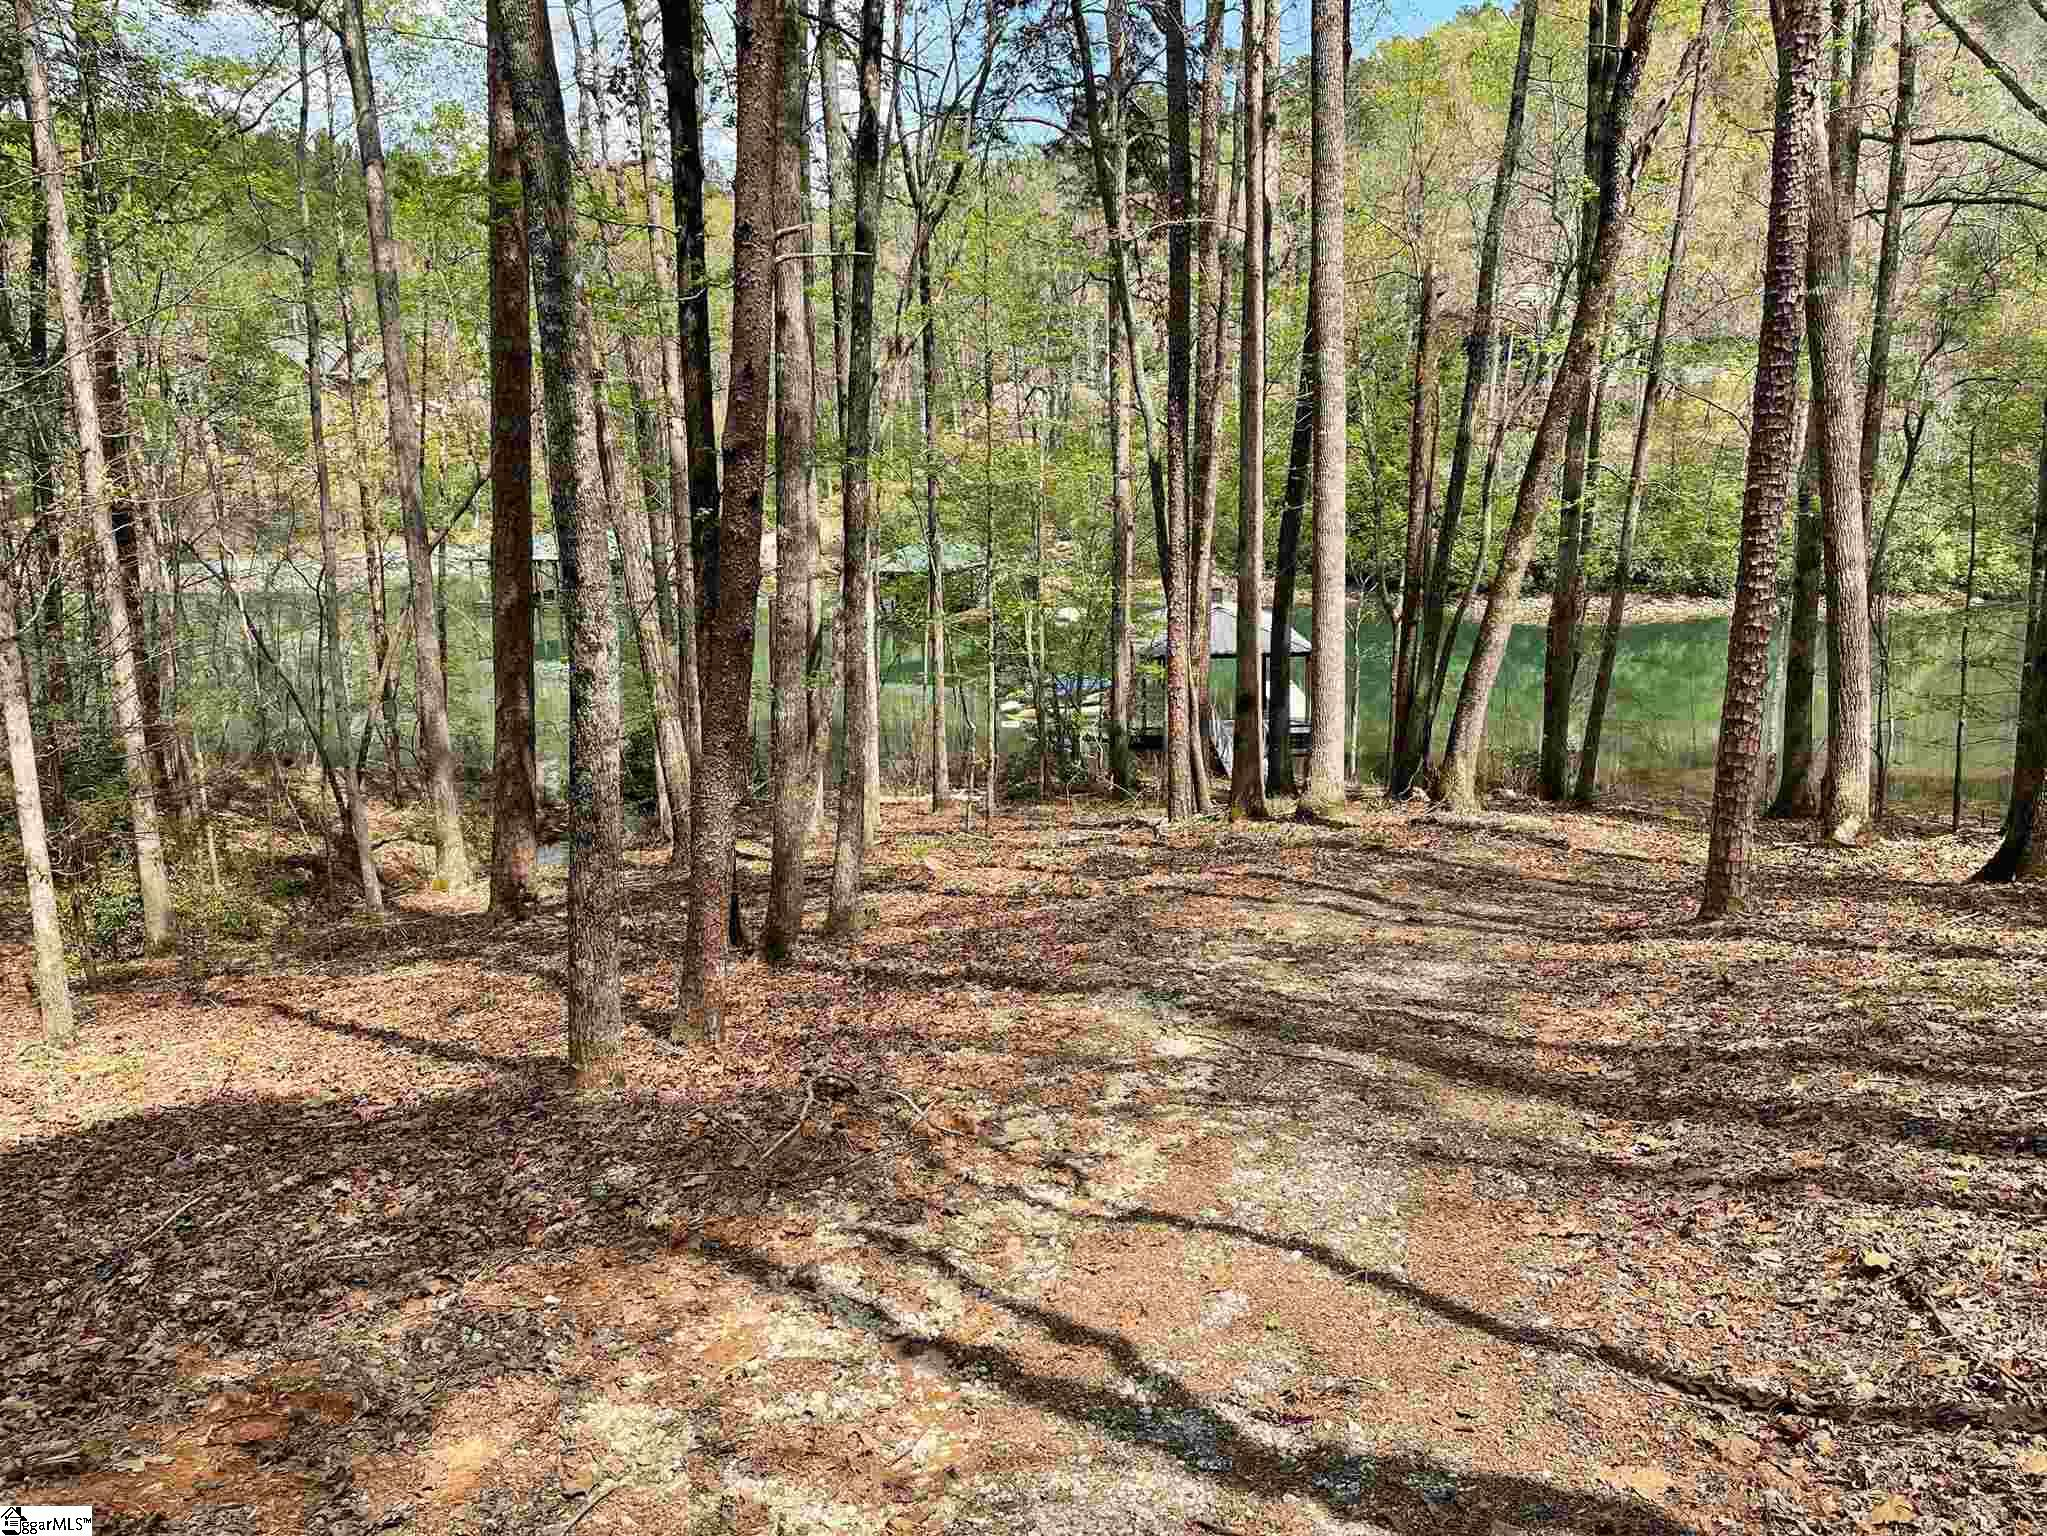 Gentle sloping large parcel waterfront lot located in quiet private cove with covered dock.  This large 2+ acre lot offers easy access and level to gentle building site optimum for low cost construction.  Featuring a winding and charming entrance driveway leading to a private build site with short easy walk to the waterfront and dock.  Enjoy quiet family time and calm water with quick and easy access to the larger main channel and nearby Springs Beach Club and other lake sites.  Covered dock in excellent shape.  Located on the first street inside main Springs gate providing easy access and egress to amenities and local towns. 15 minutes to Clemson.